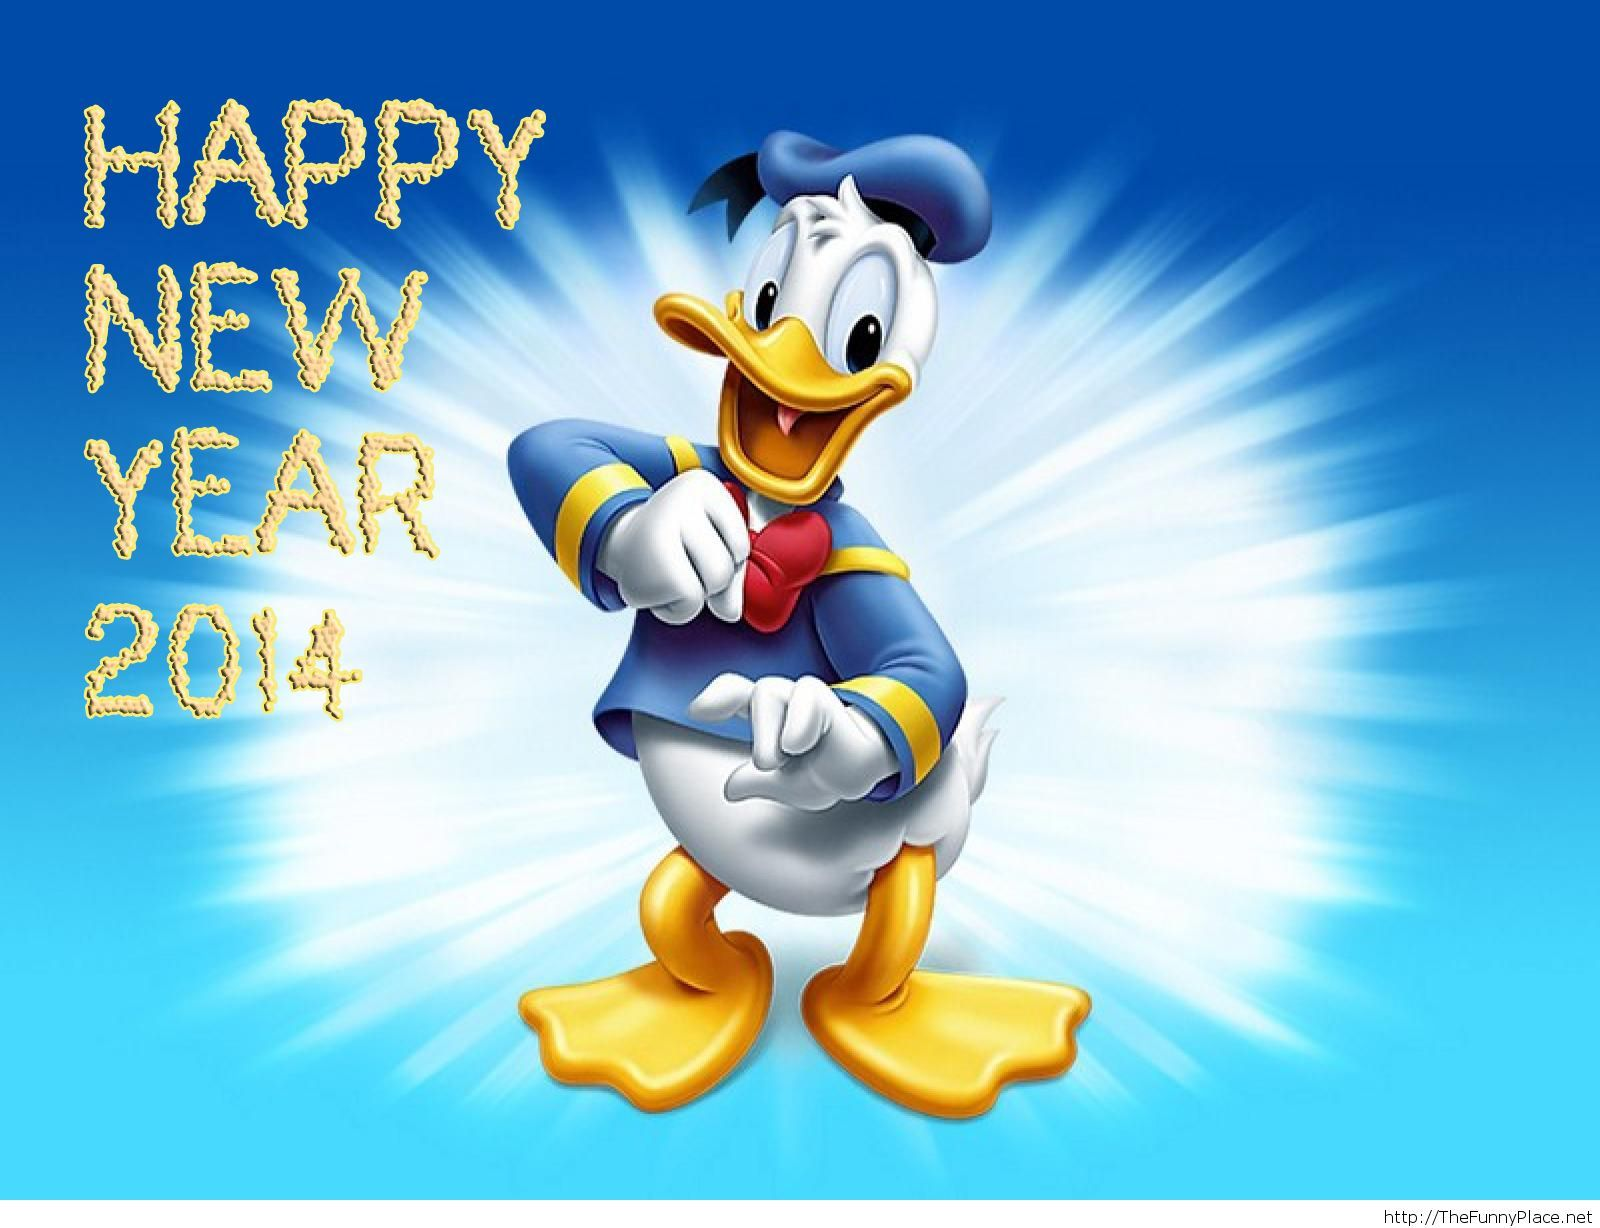 Happy new year 2014 cartoon wallpaper